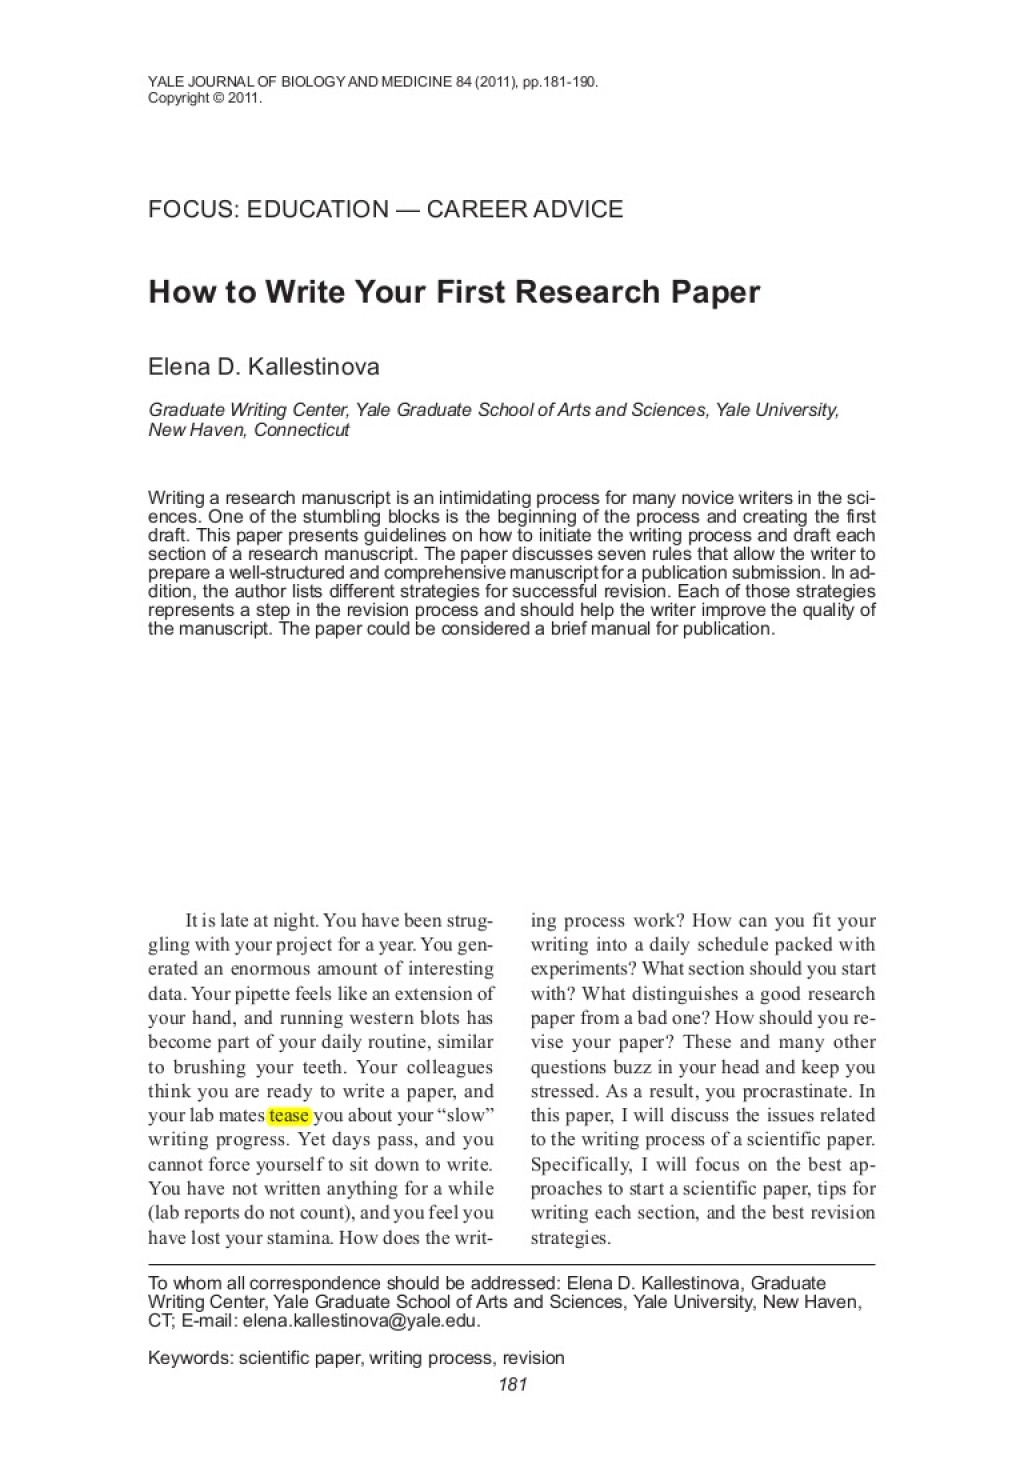 008 Research Paper How To Write Papers Howtowriteyourfirstresearchpaper Lva1 App6891 Thumbnail Outstanding A Proposal In Apa Format Sample History Thesis Large